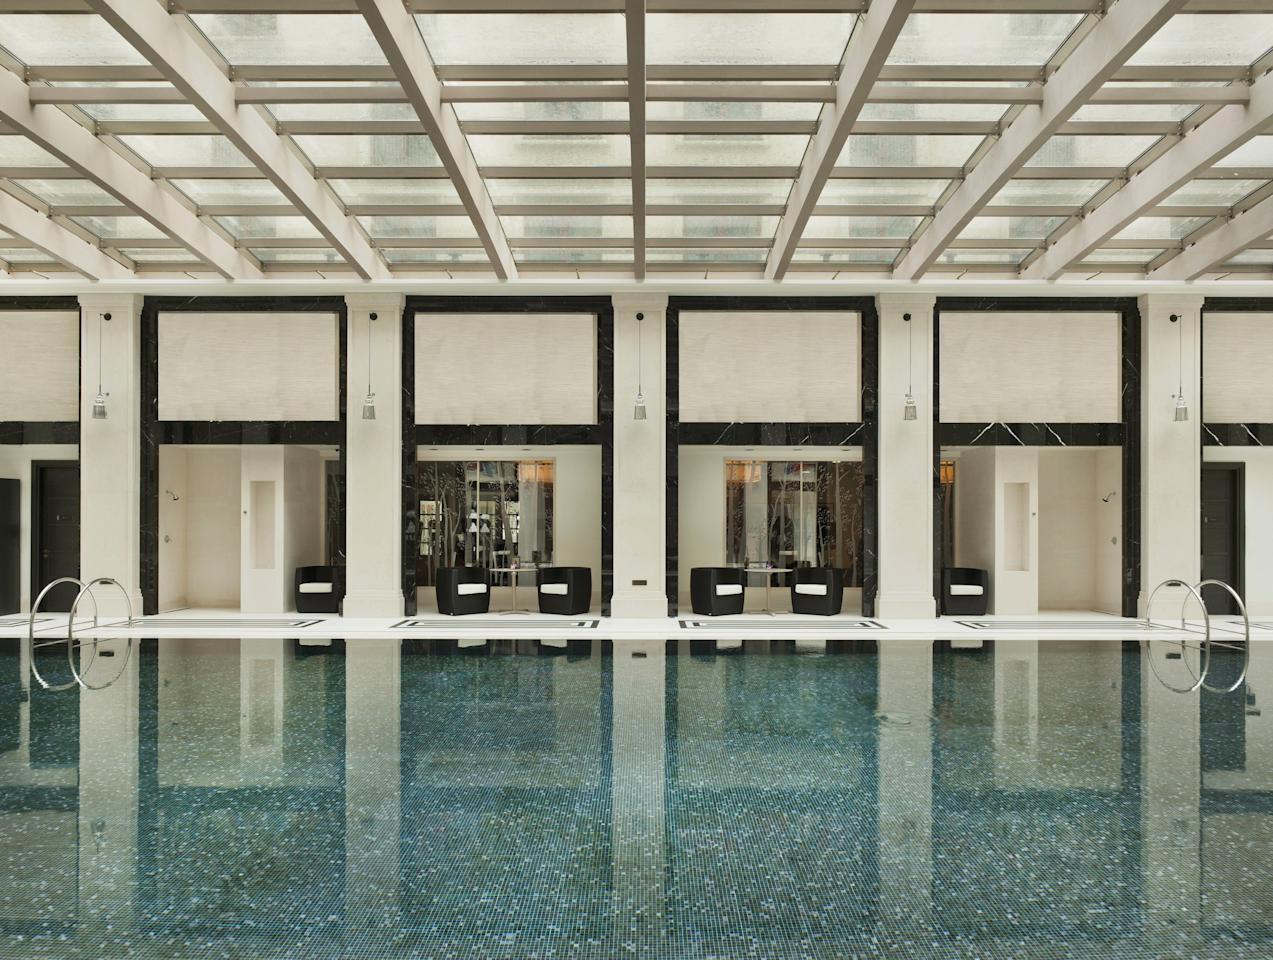 Located mere feet from Russia's Red Square, the <strong>Four Seasons Hotel Moscow</strong> offers more than just views of the city. With a specular indoor pool that is illuminated with natural lighting (courtesy of a glass roof overhead), patrons will feel as if they are outdoors from within the comfort of the hotel.